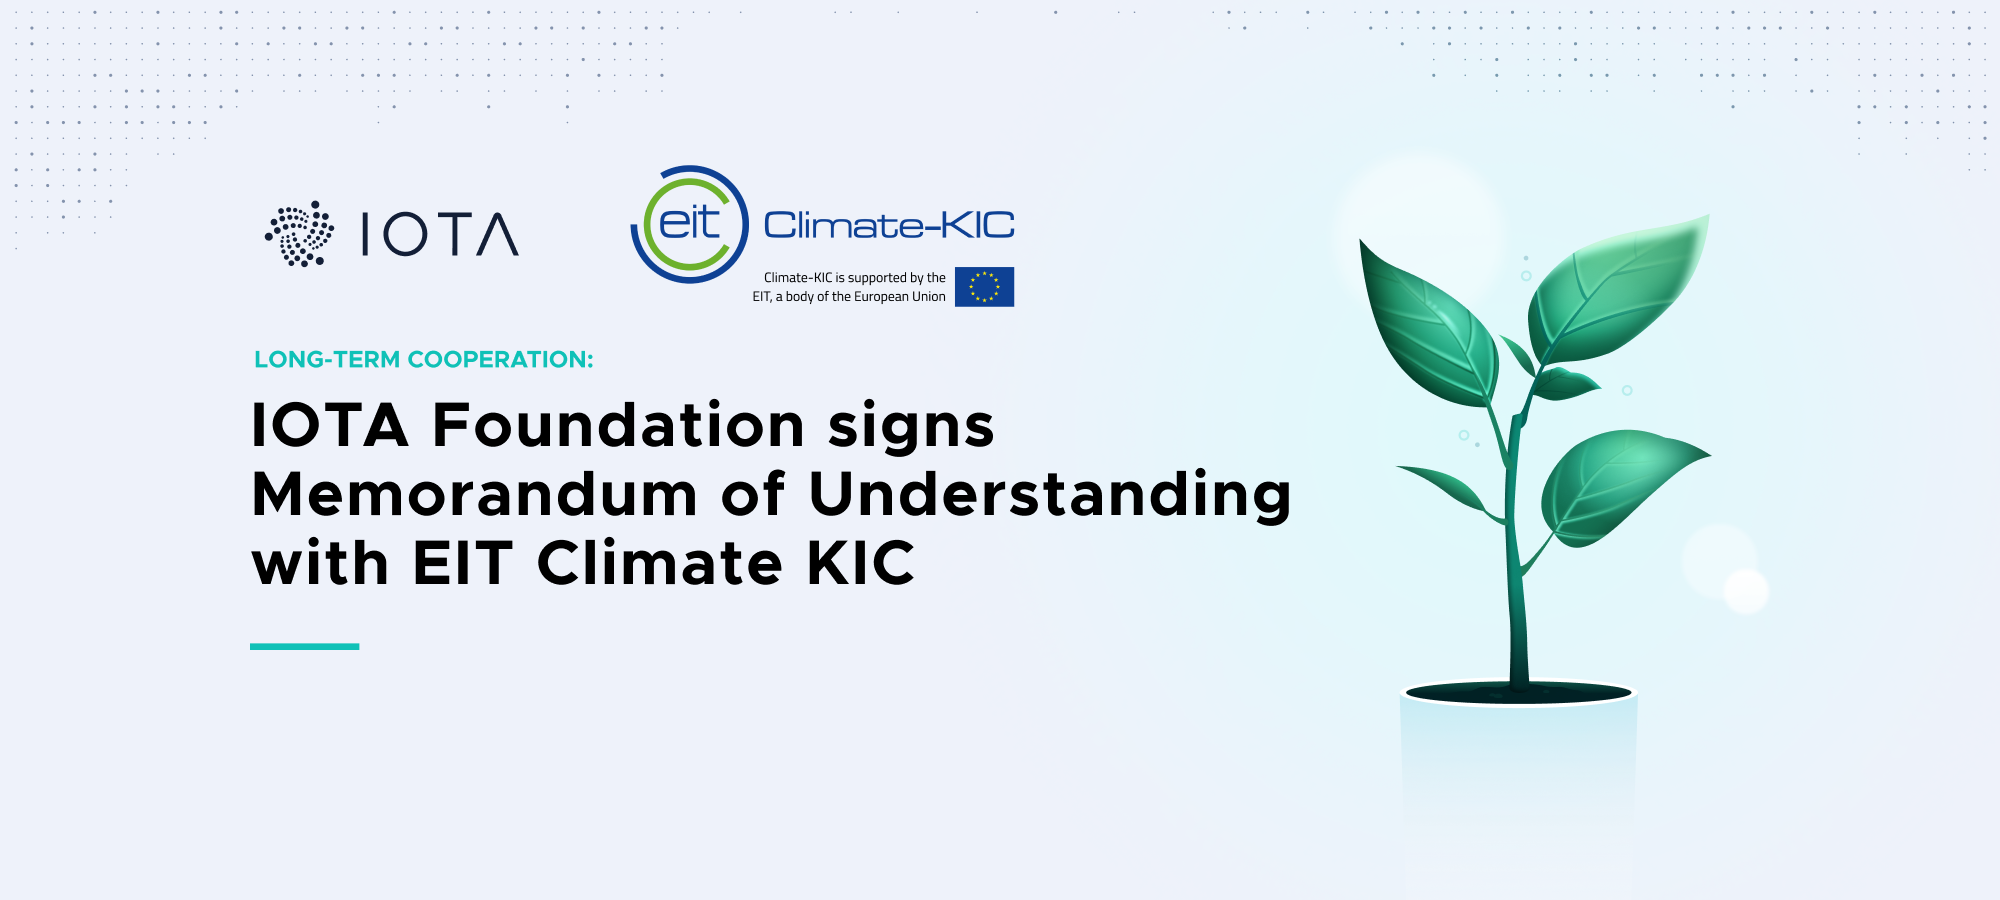 Long-Term Cooperation: IOTA Foundation signs Memorandum of Understanding with EIT Climate KIC